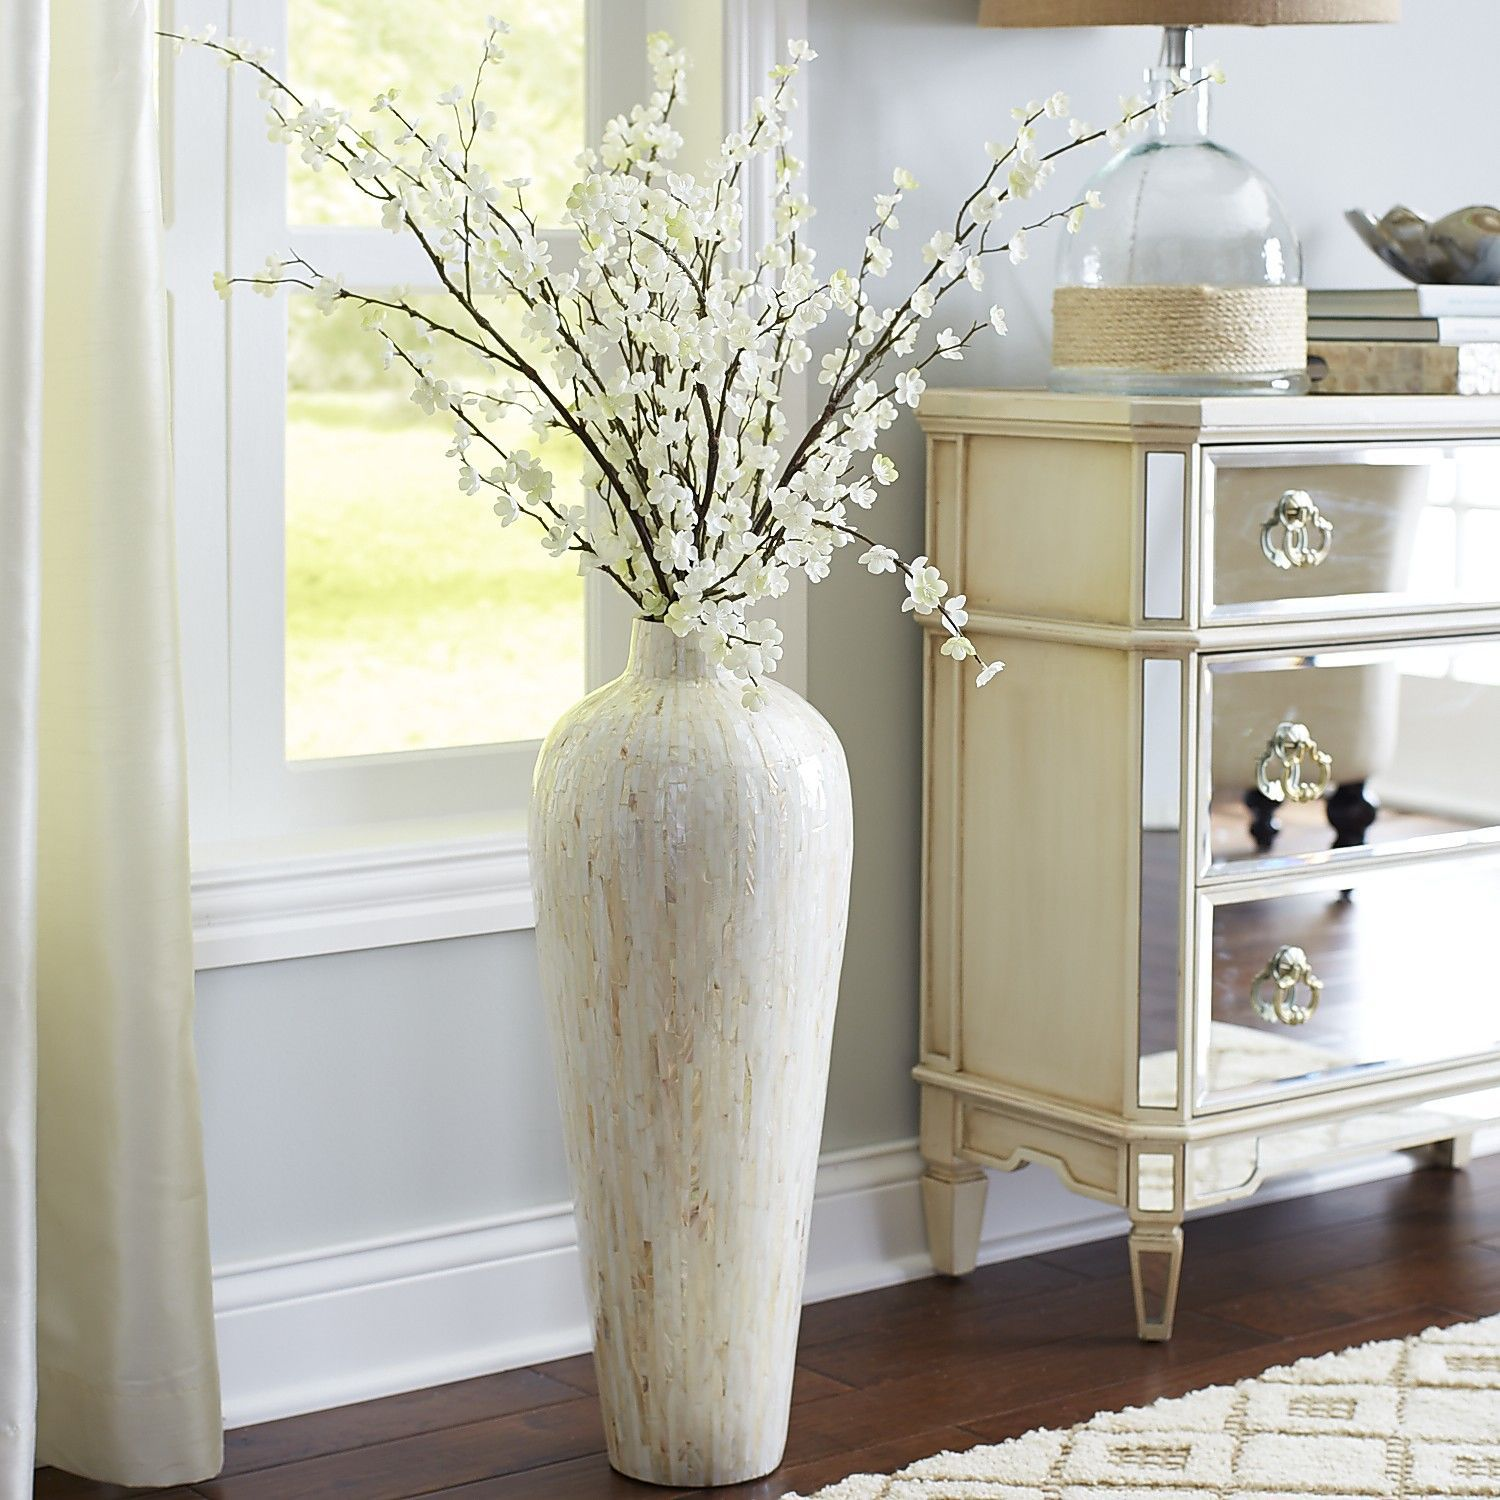 Ivory Mother-of-Pearl Floor Vase | Pinterest | Ivory, Pearls and ...